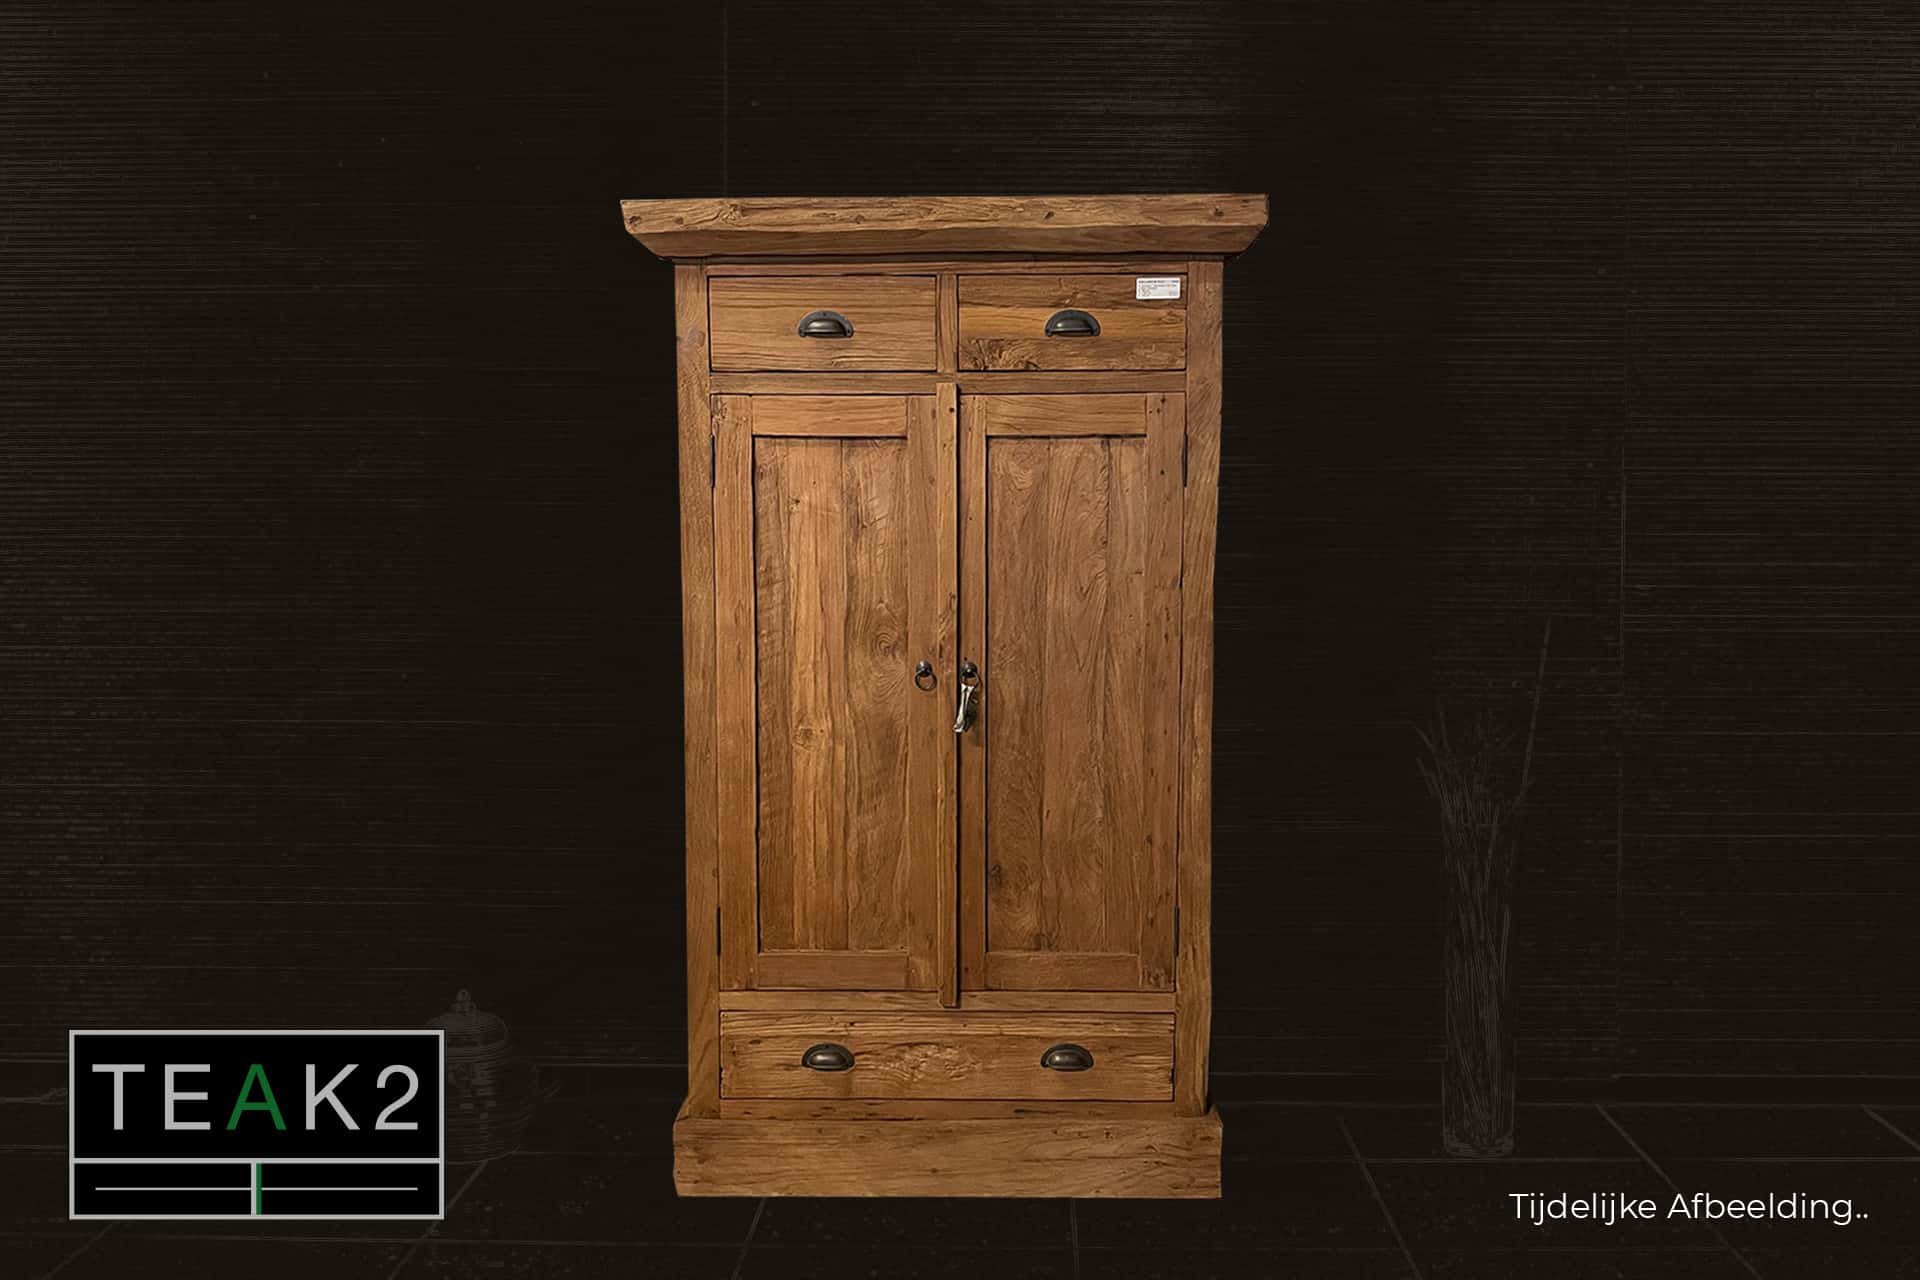 Cuci Lirih 90 Old 4 | small teak cabinet with 4 drawers from Indonesia in brushed old teak. Wall cabinet with revolving doors - teak store TEAK2.